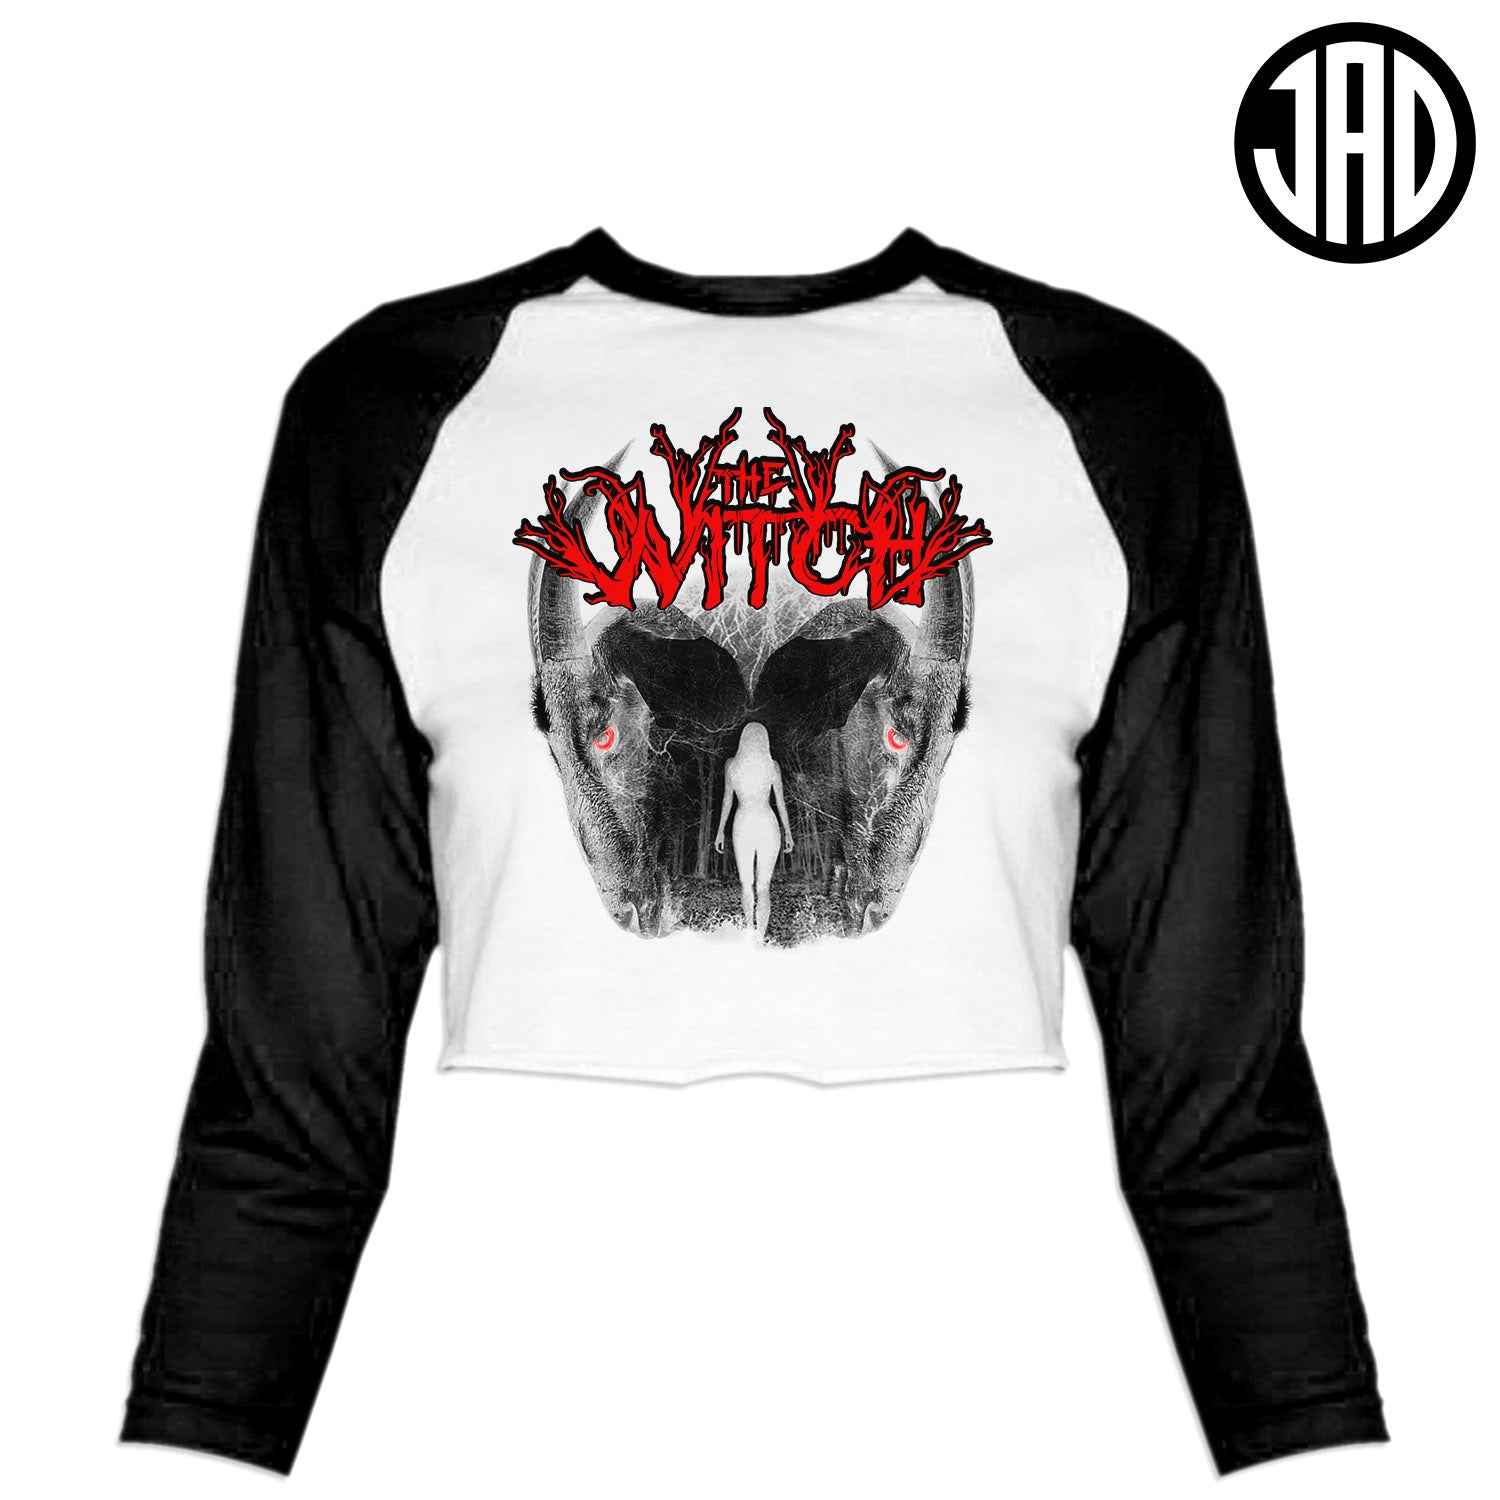 Witch Metal - Women's Cropped Baseball Tee